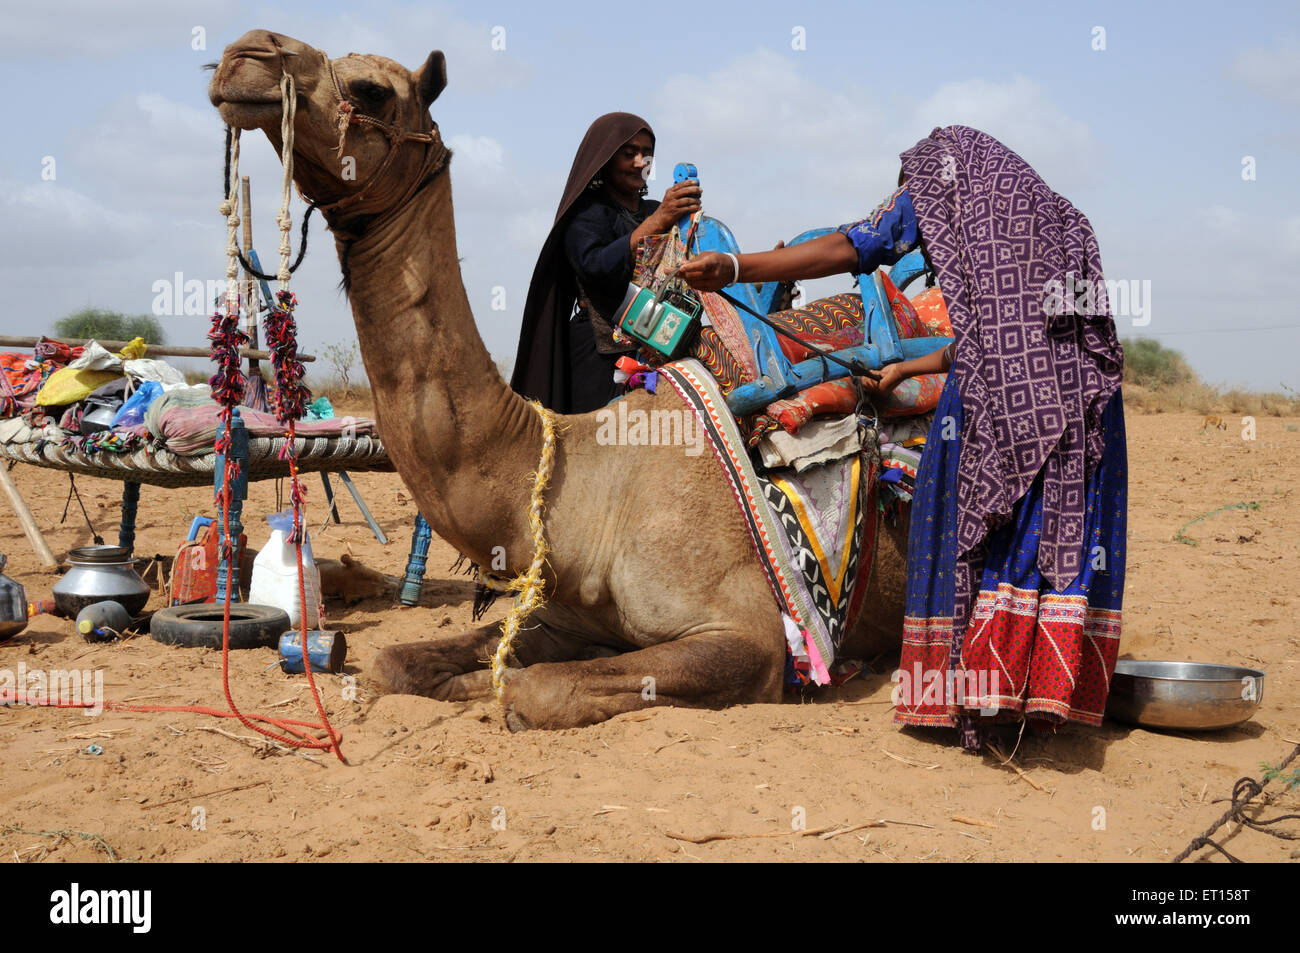 Gypsy tribal women carrying household thing on camel ; Kutch ; Gujarat ; India - Stock Image